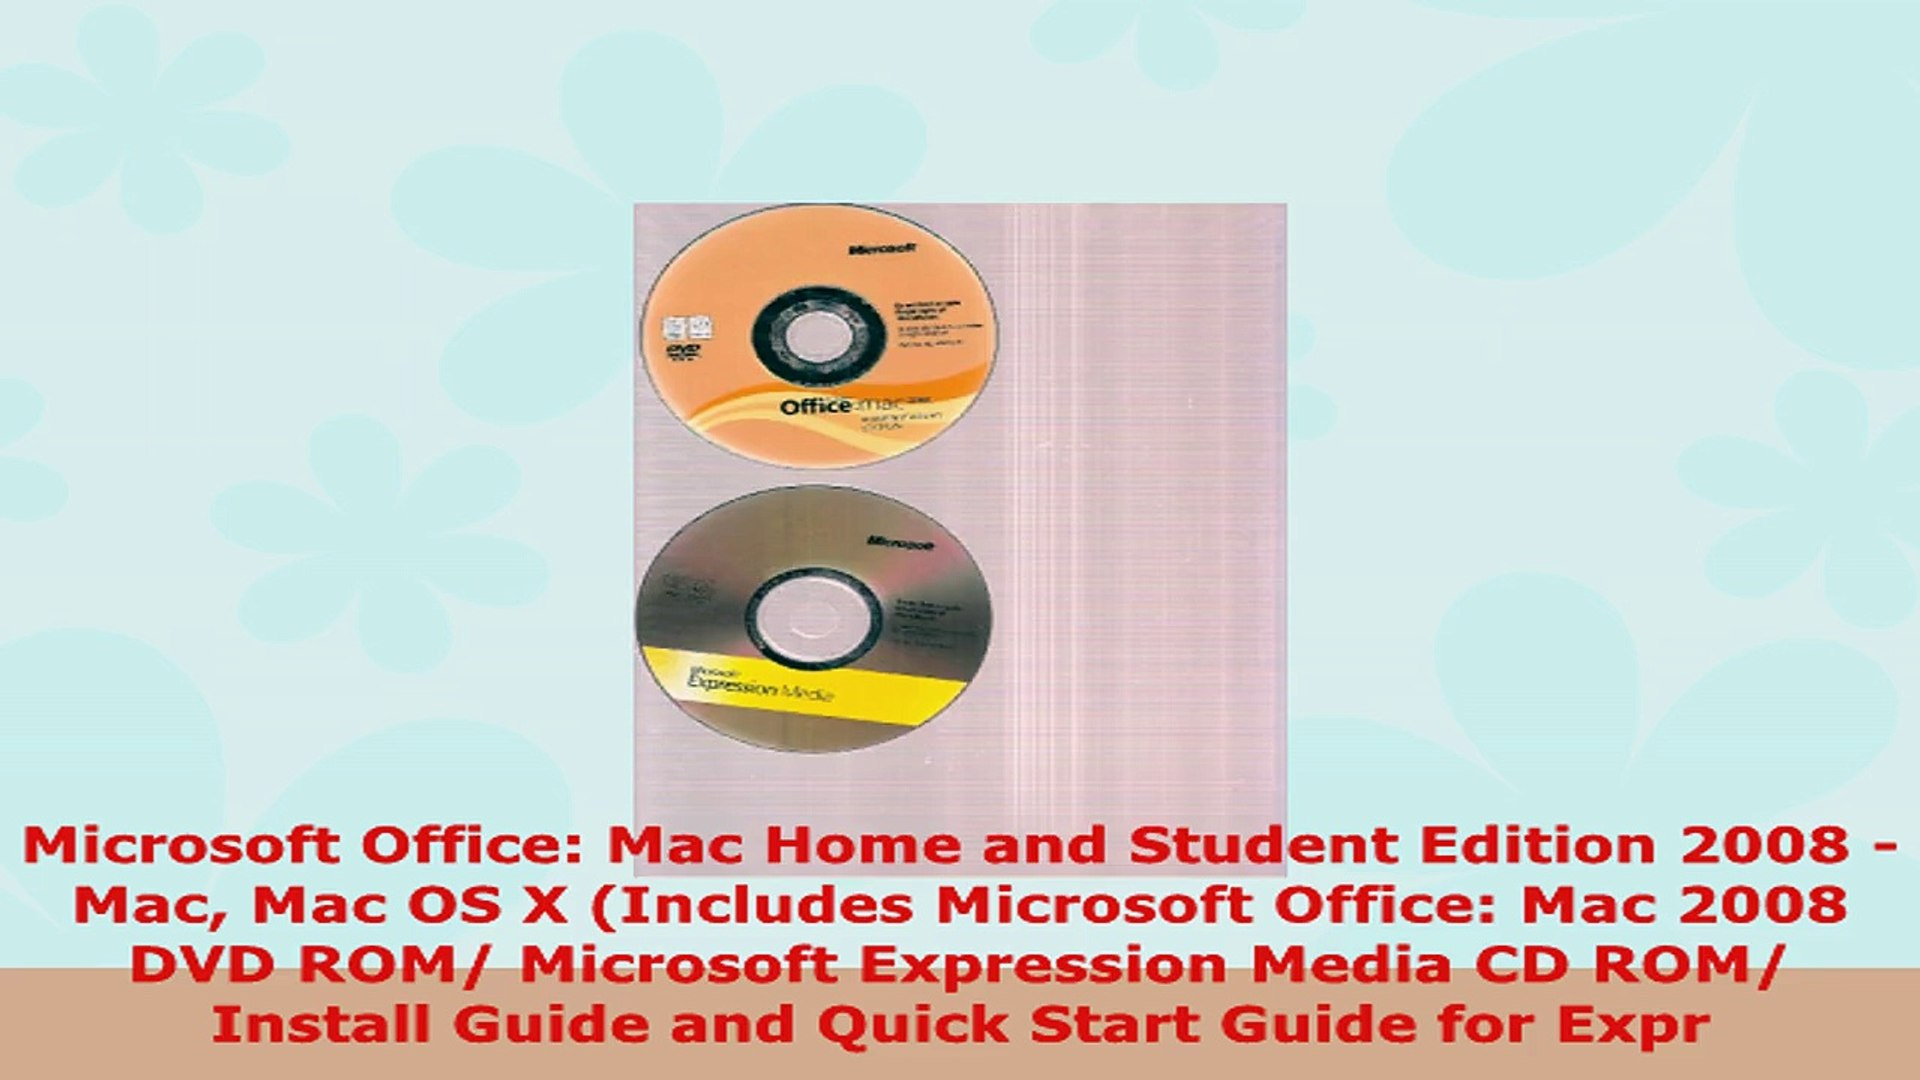 READ ONLINE  Microsoft Office Mac Home and Student Edition 2008  Mac Mac OS X Includes Microsoft